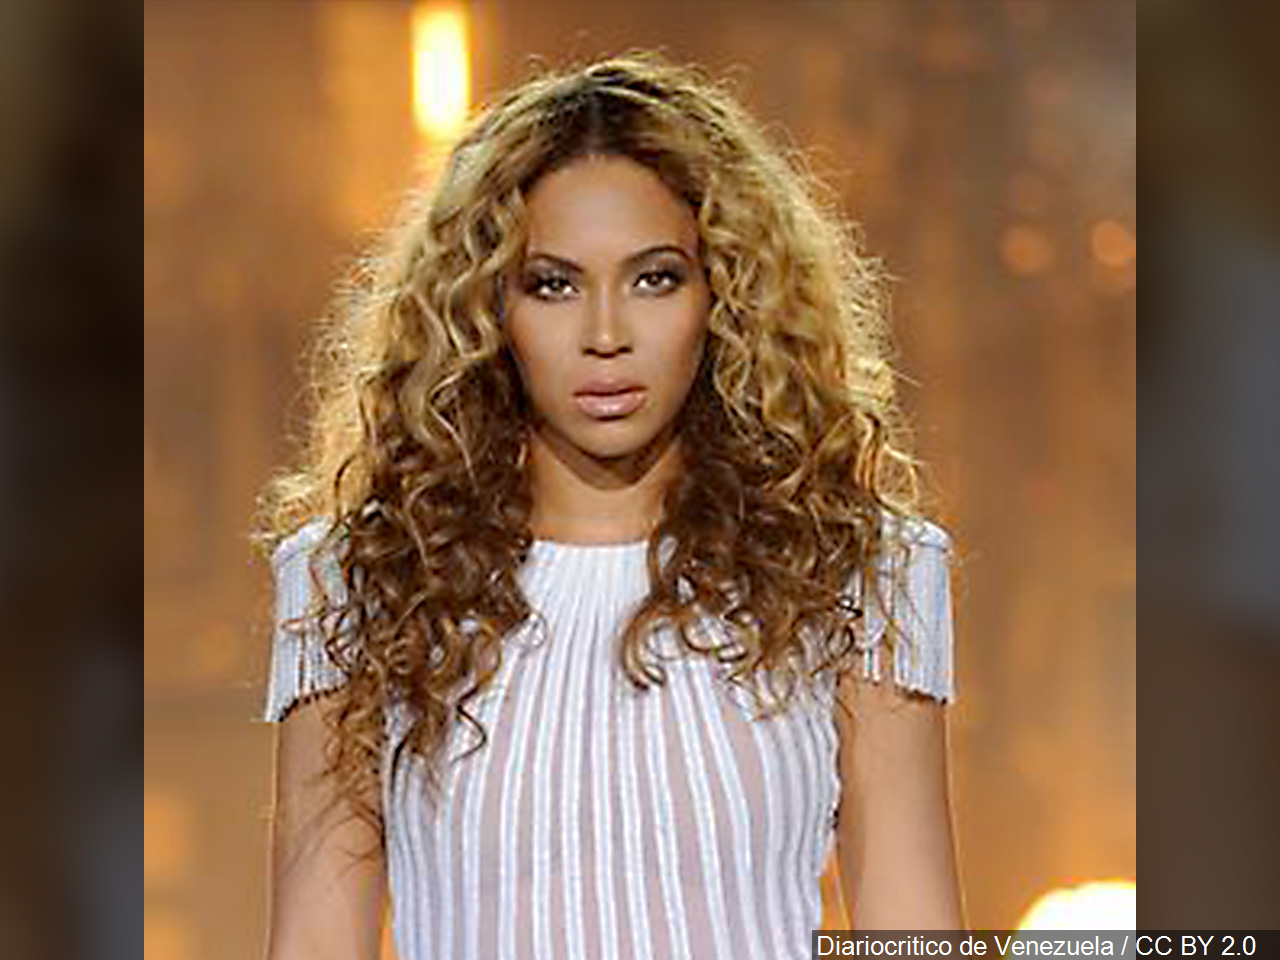 Beyonce photographed in April 2013. (MGN/Diariocritico de Venezuela/CC BY 2.0)